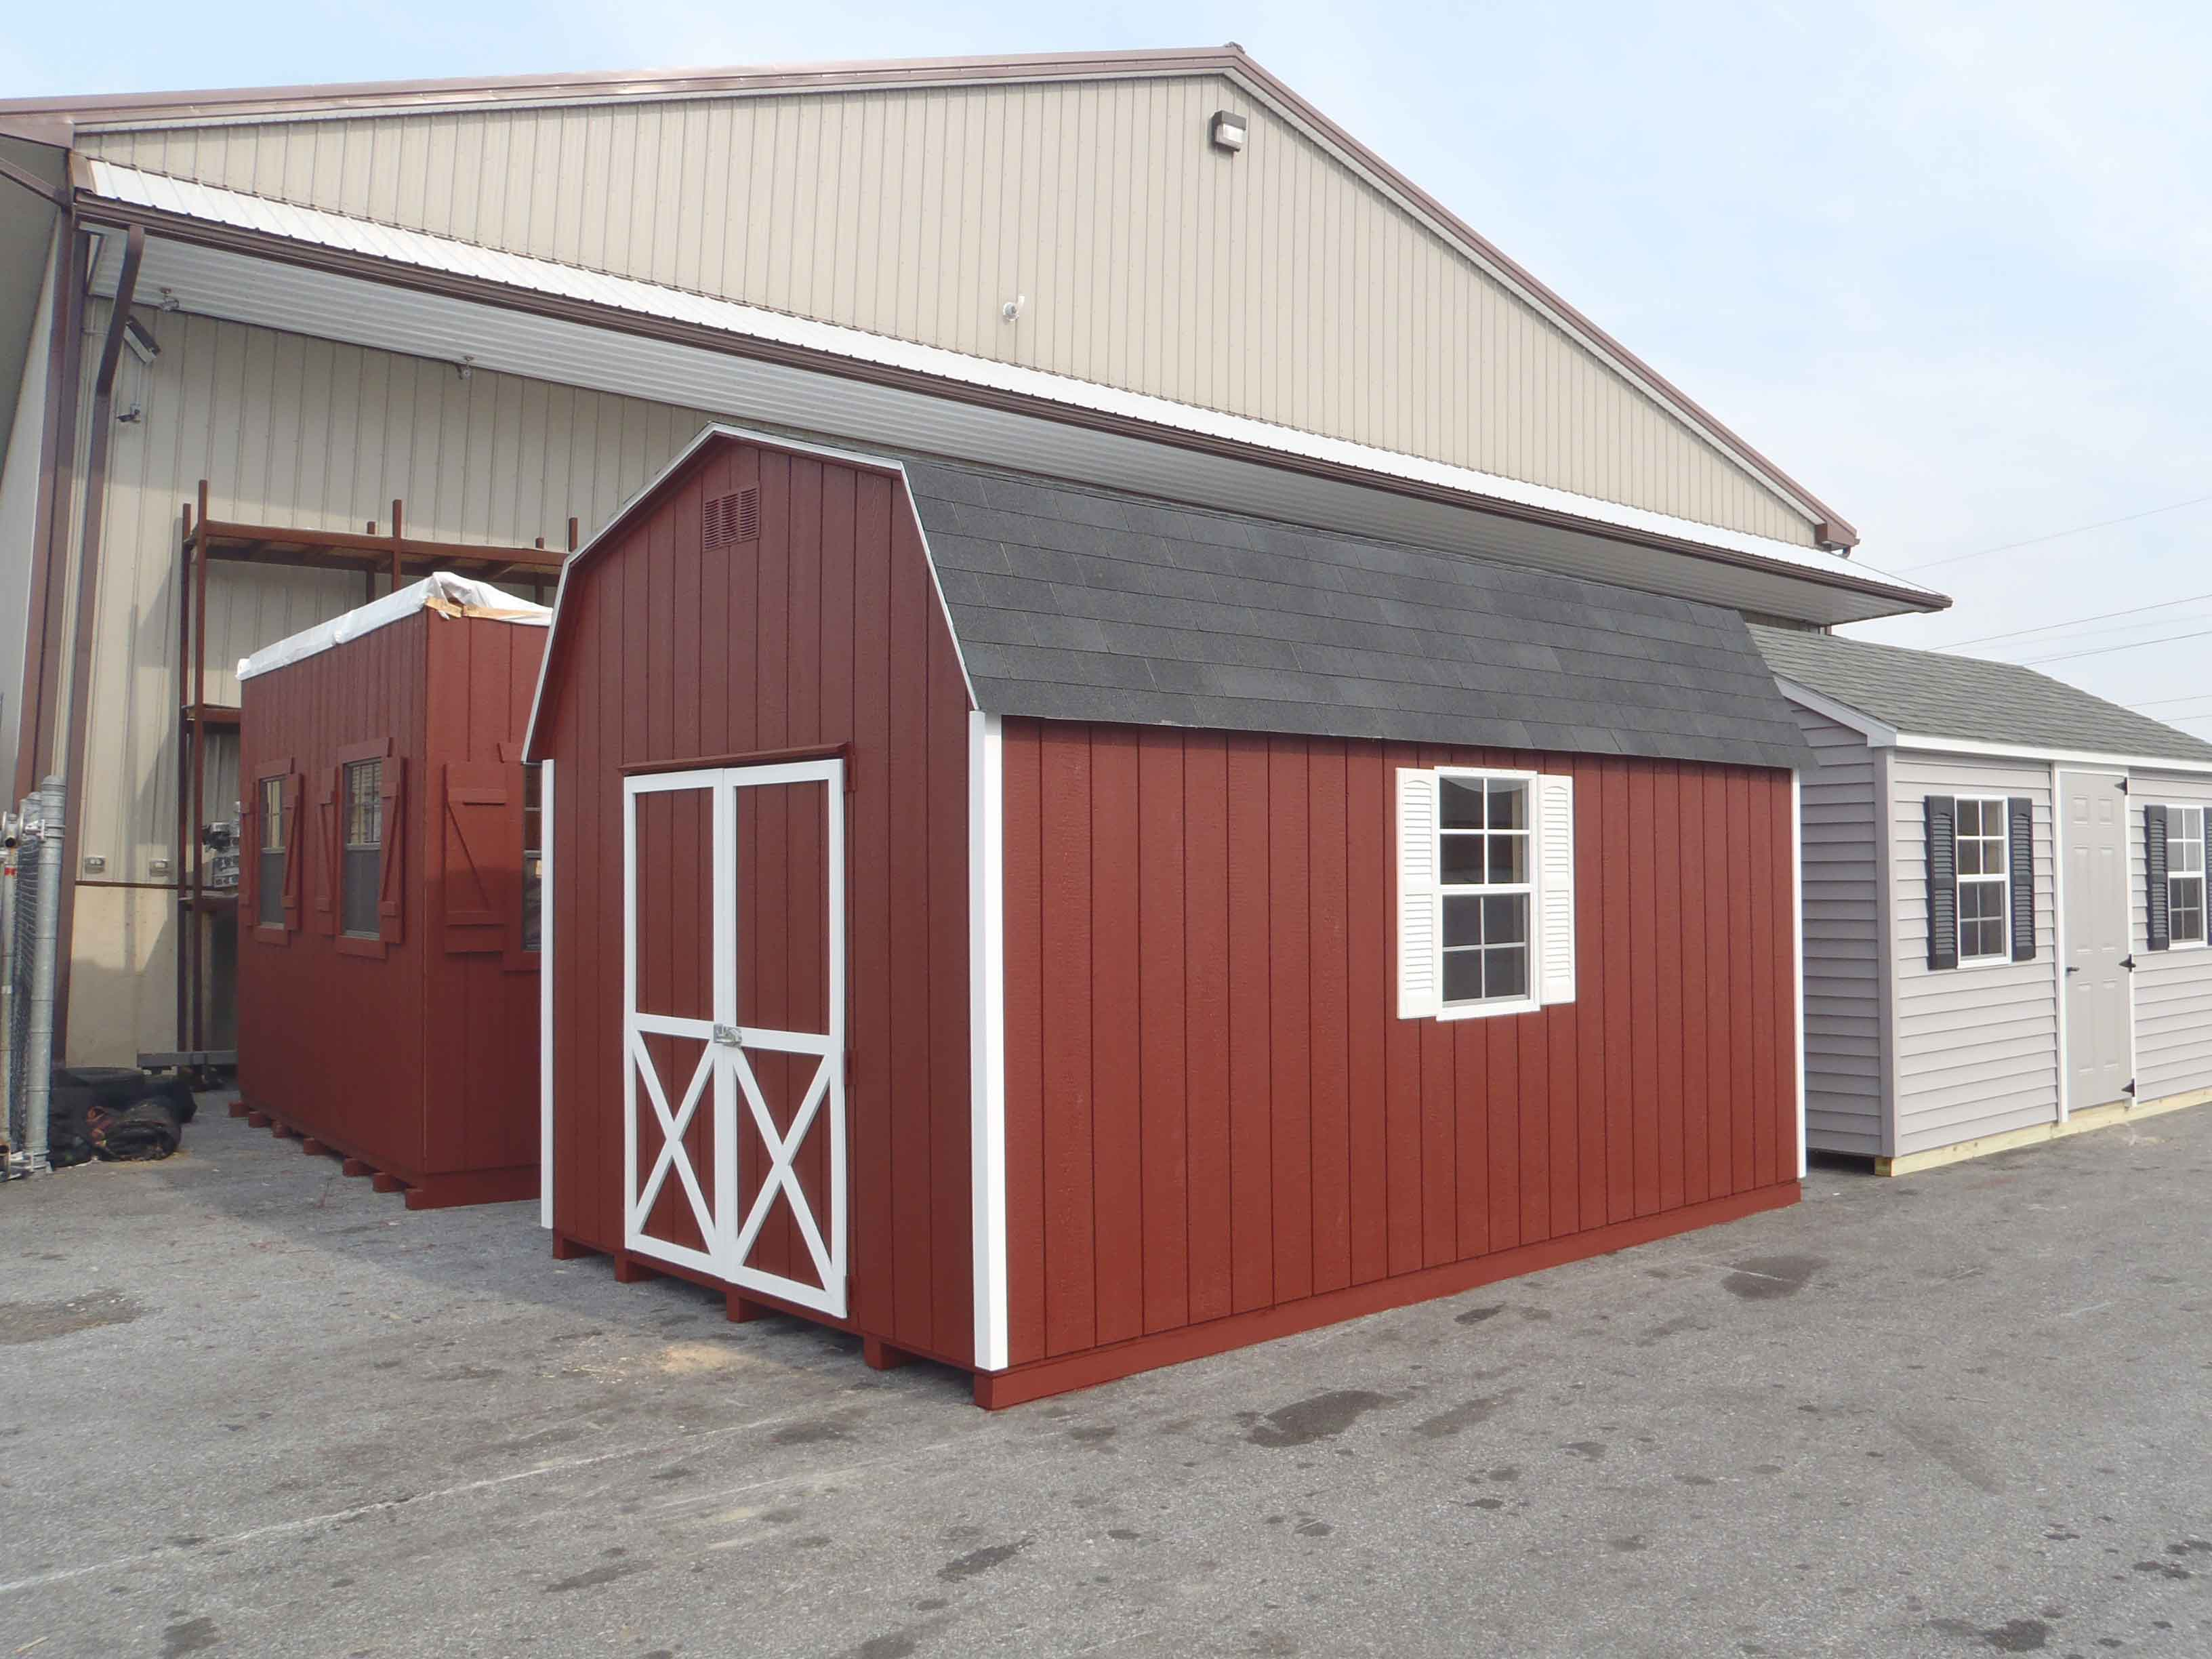 barns mega customers selected important sheds barn storage customer information